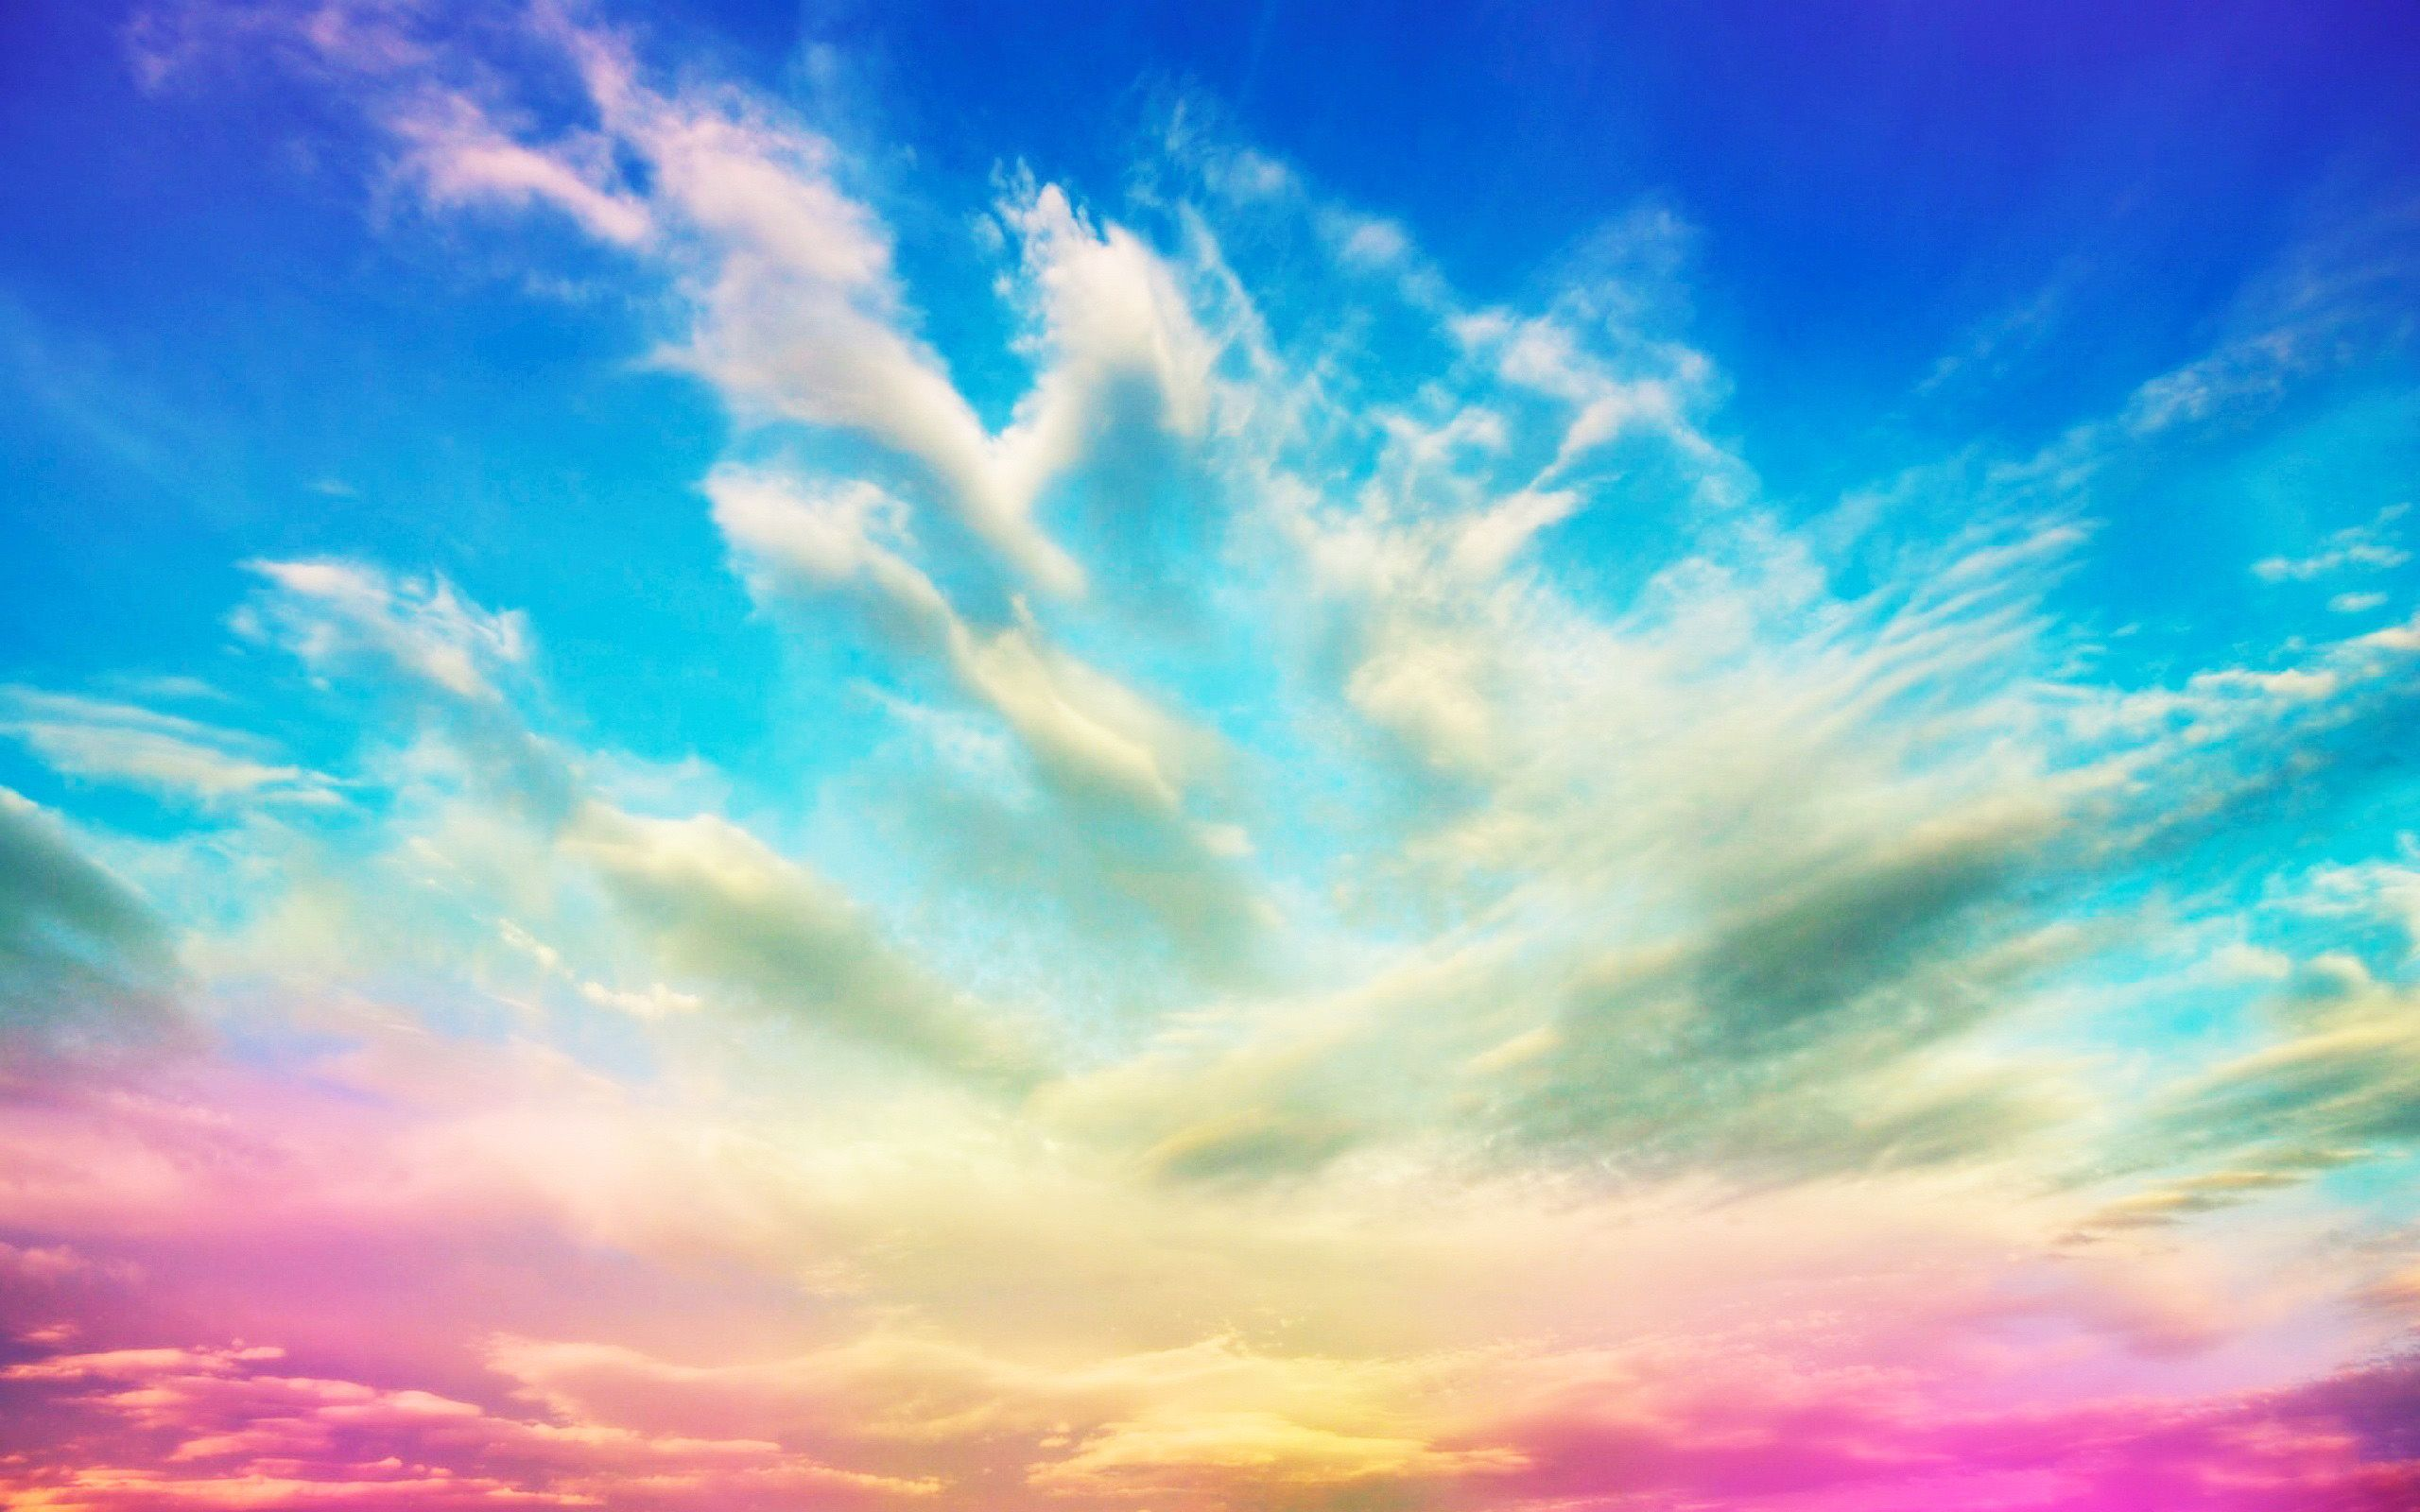 Colourful Fantasy Cloud Backgrounds: Colorful Cloud Background HD